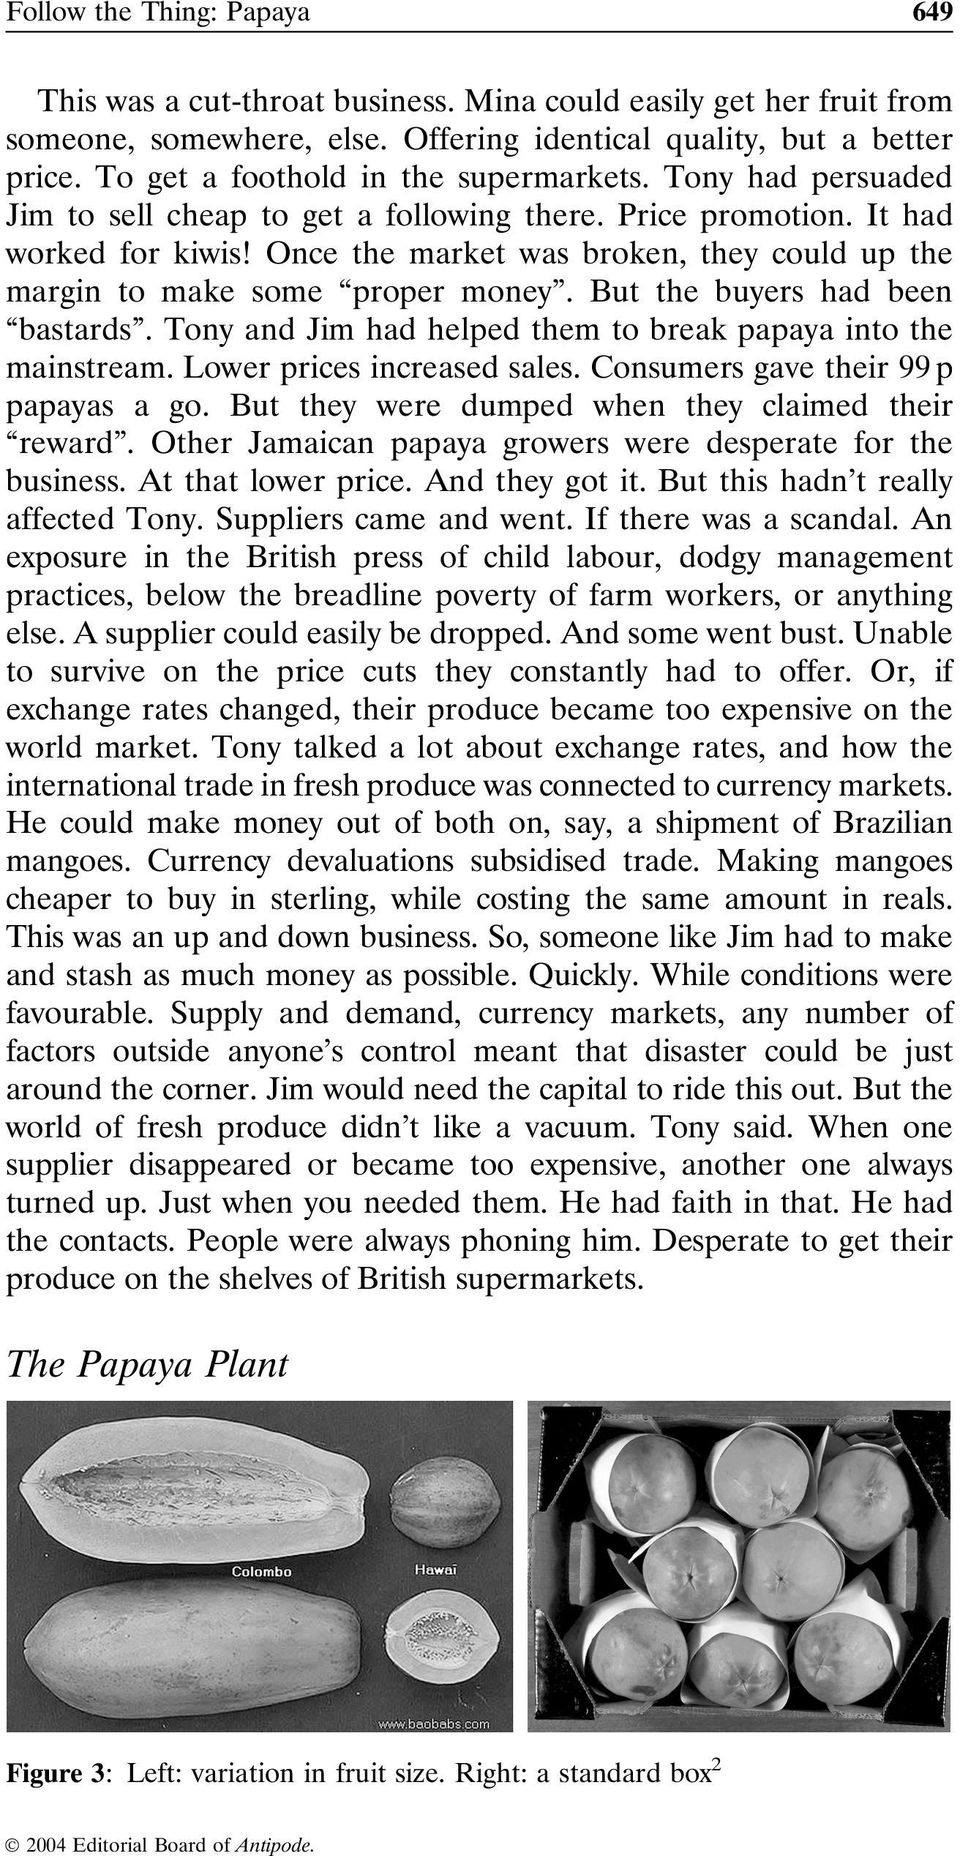 Once the market was broken, they could up the margin to make some proper money. But the buyers had been bastards. Tony and Jim had helped them to break papaya into the mainstream.